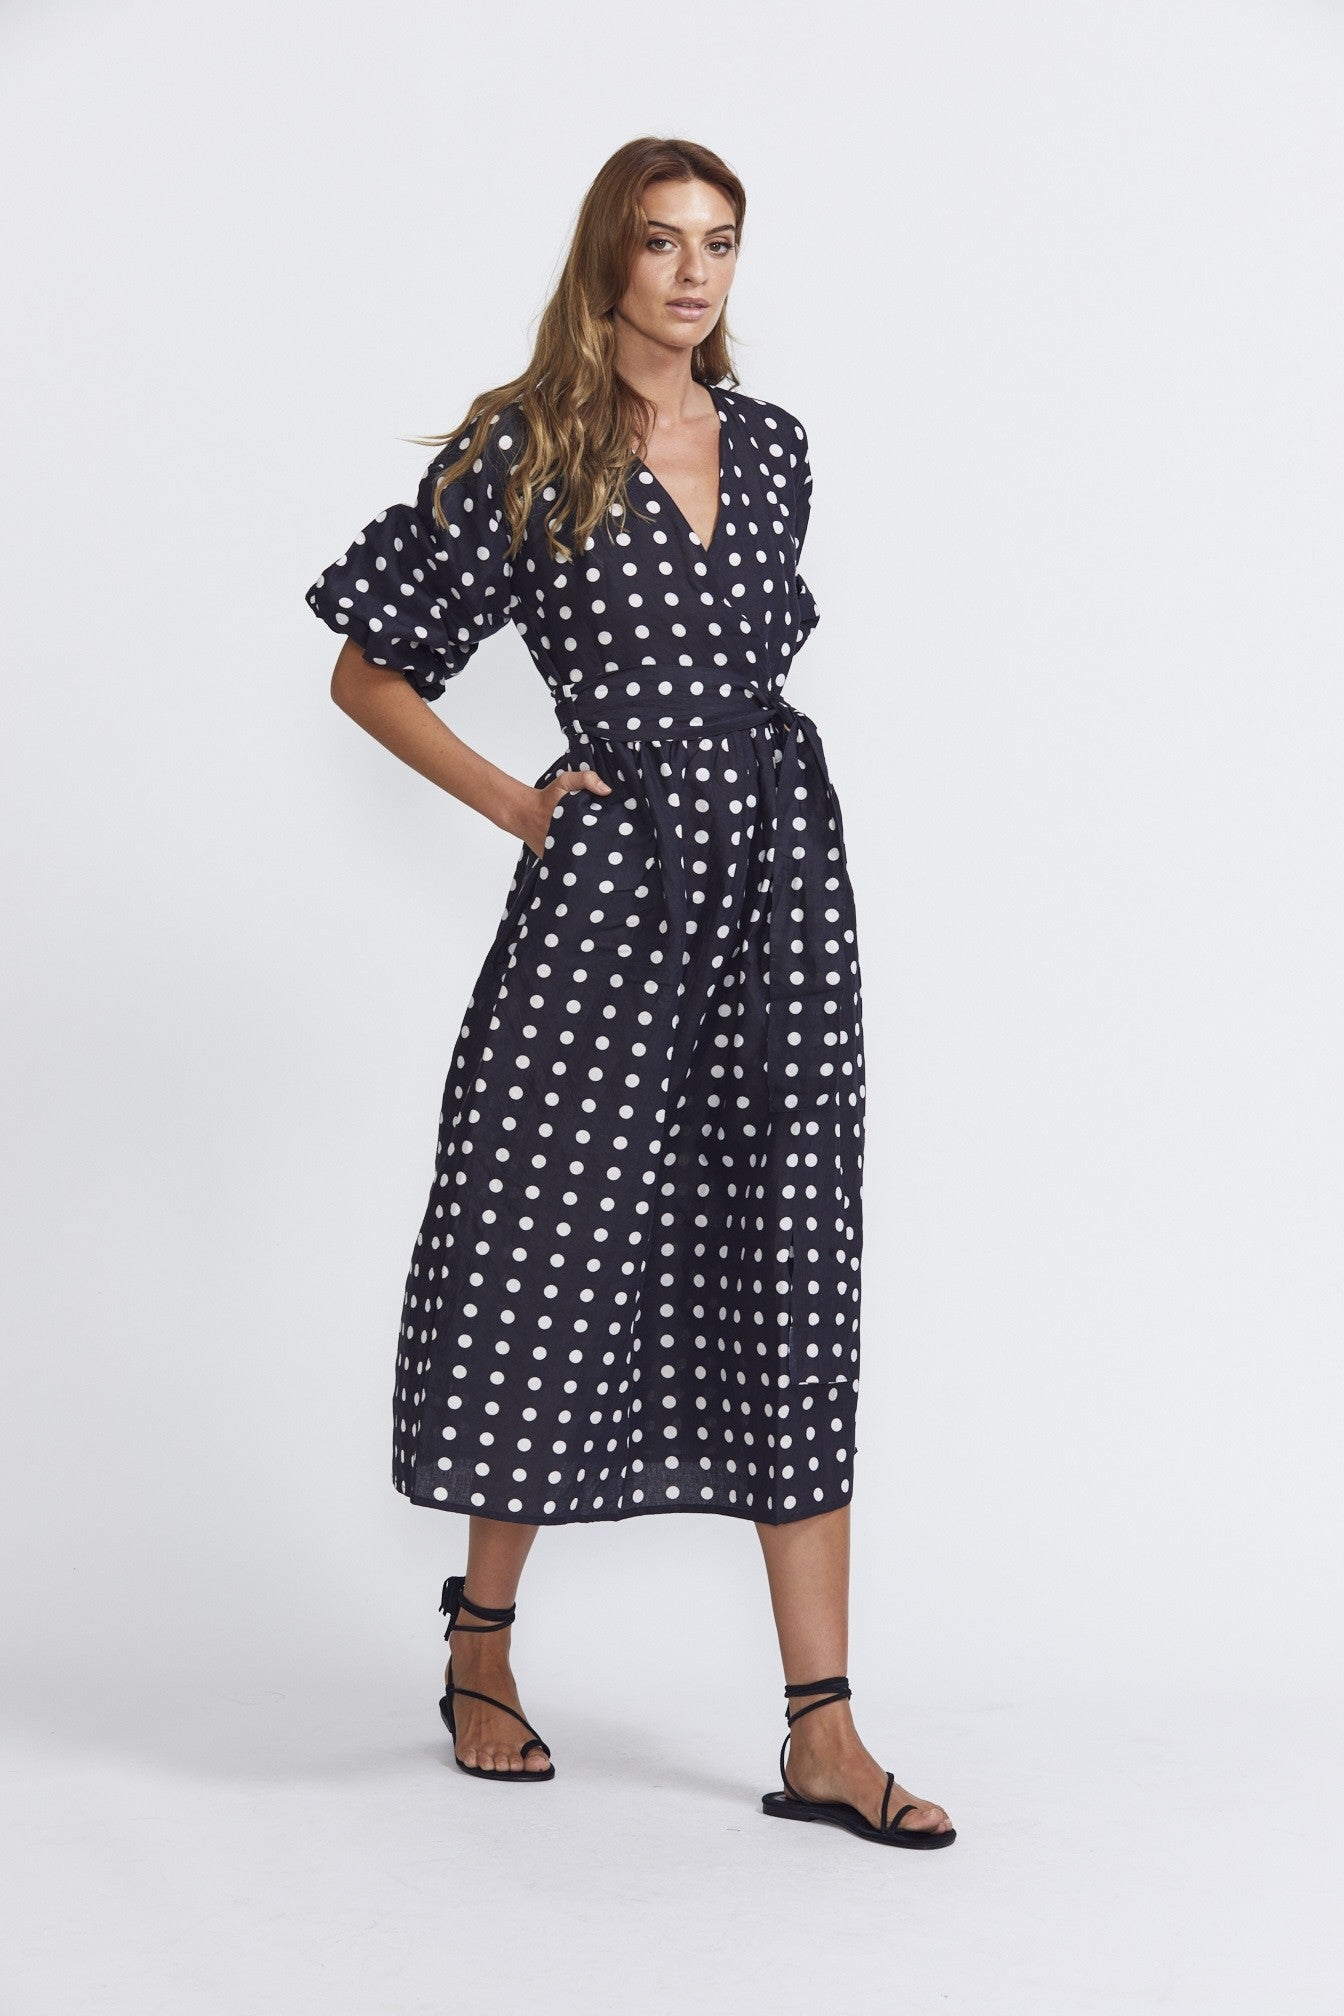 ÉSS THE LABEL Crystal Wrap Dress - Polka Dot